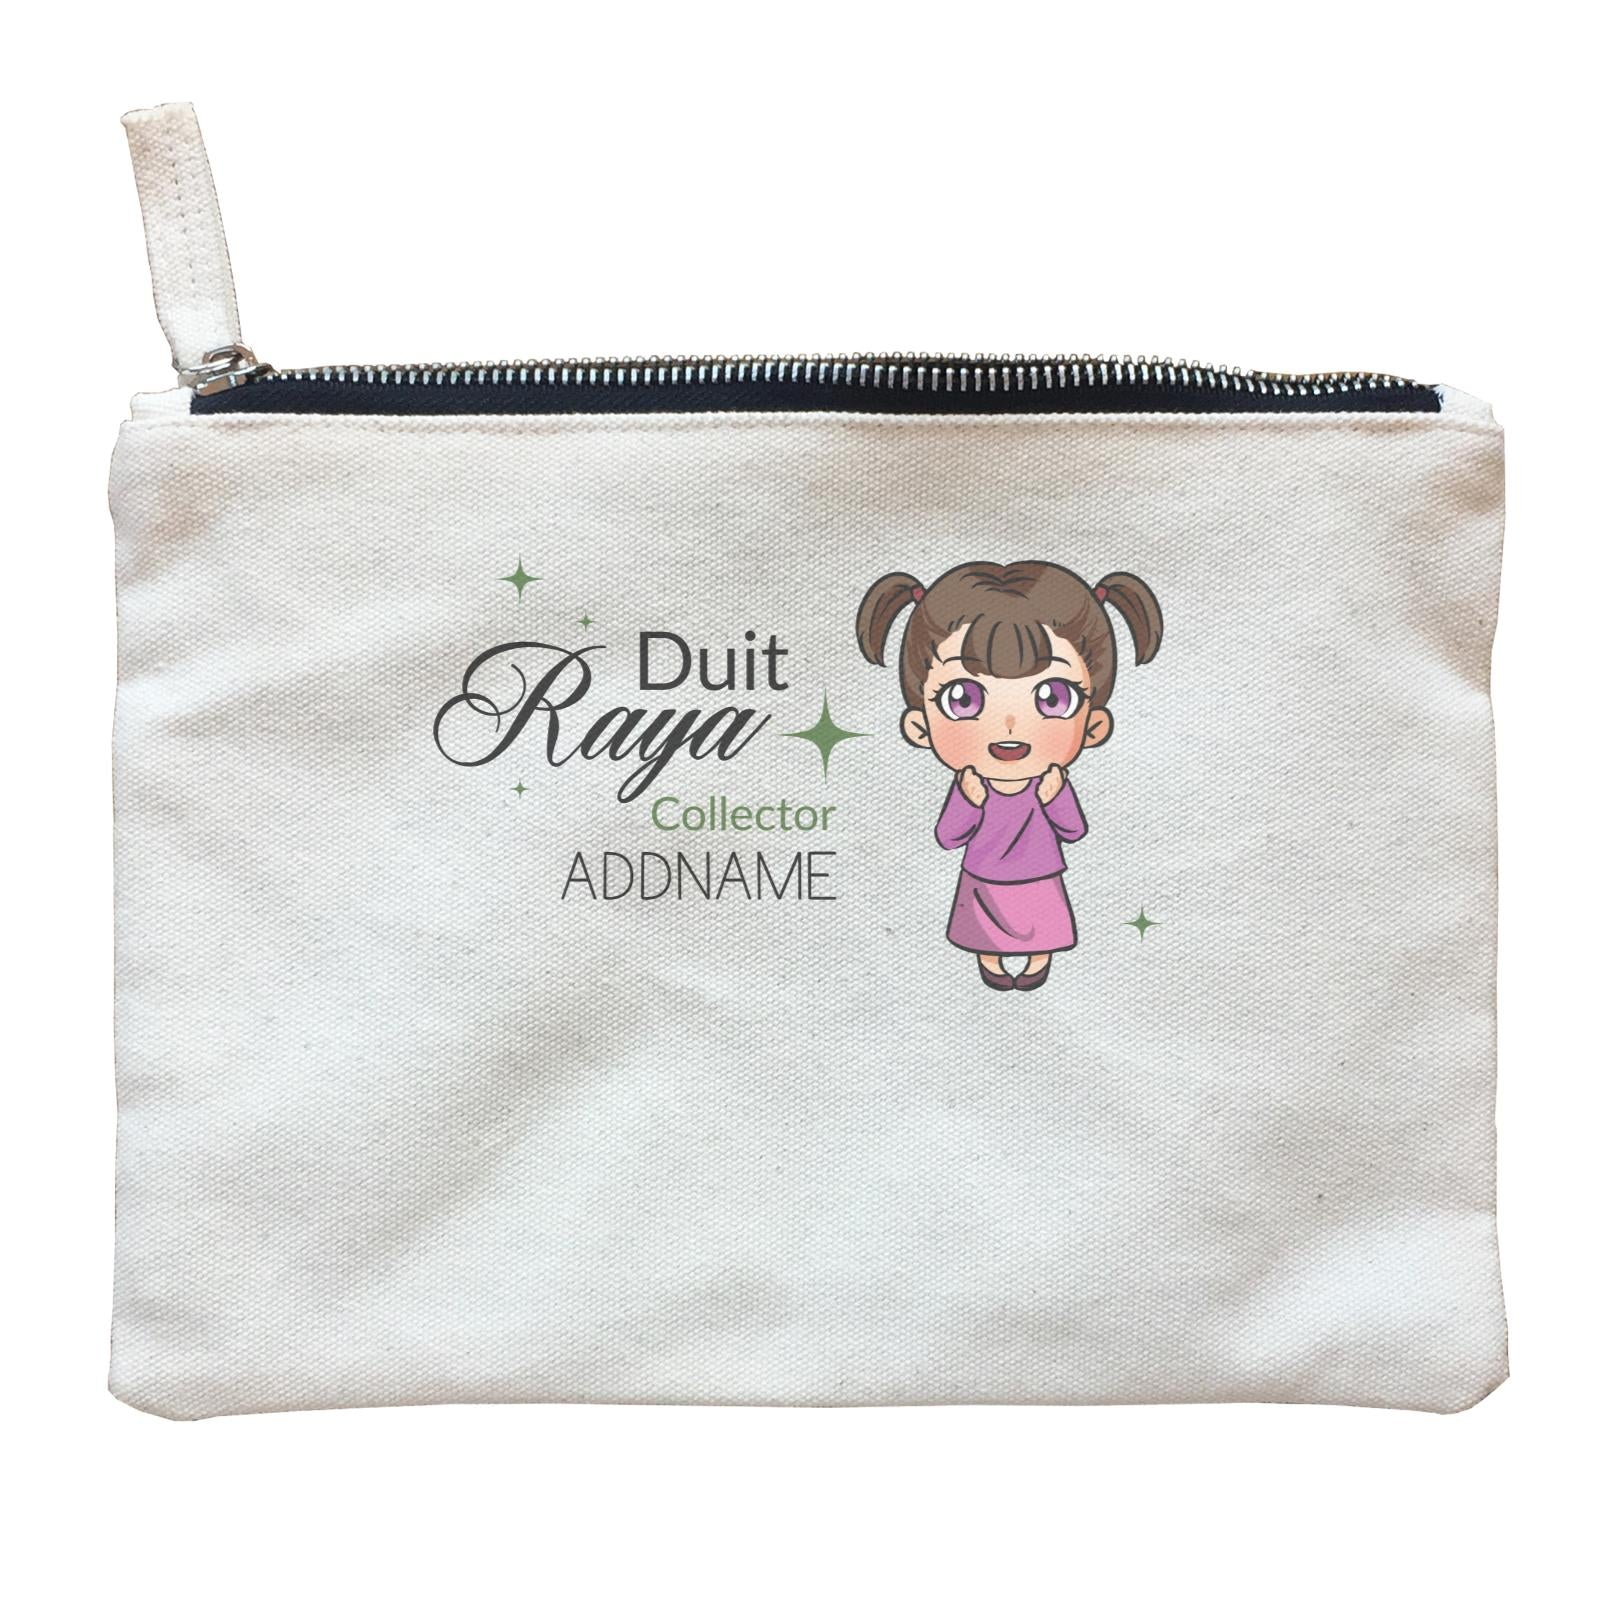 Raya Chibi Little Girl Duit Raya Collector Addname Zipper Pouch